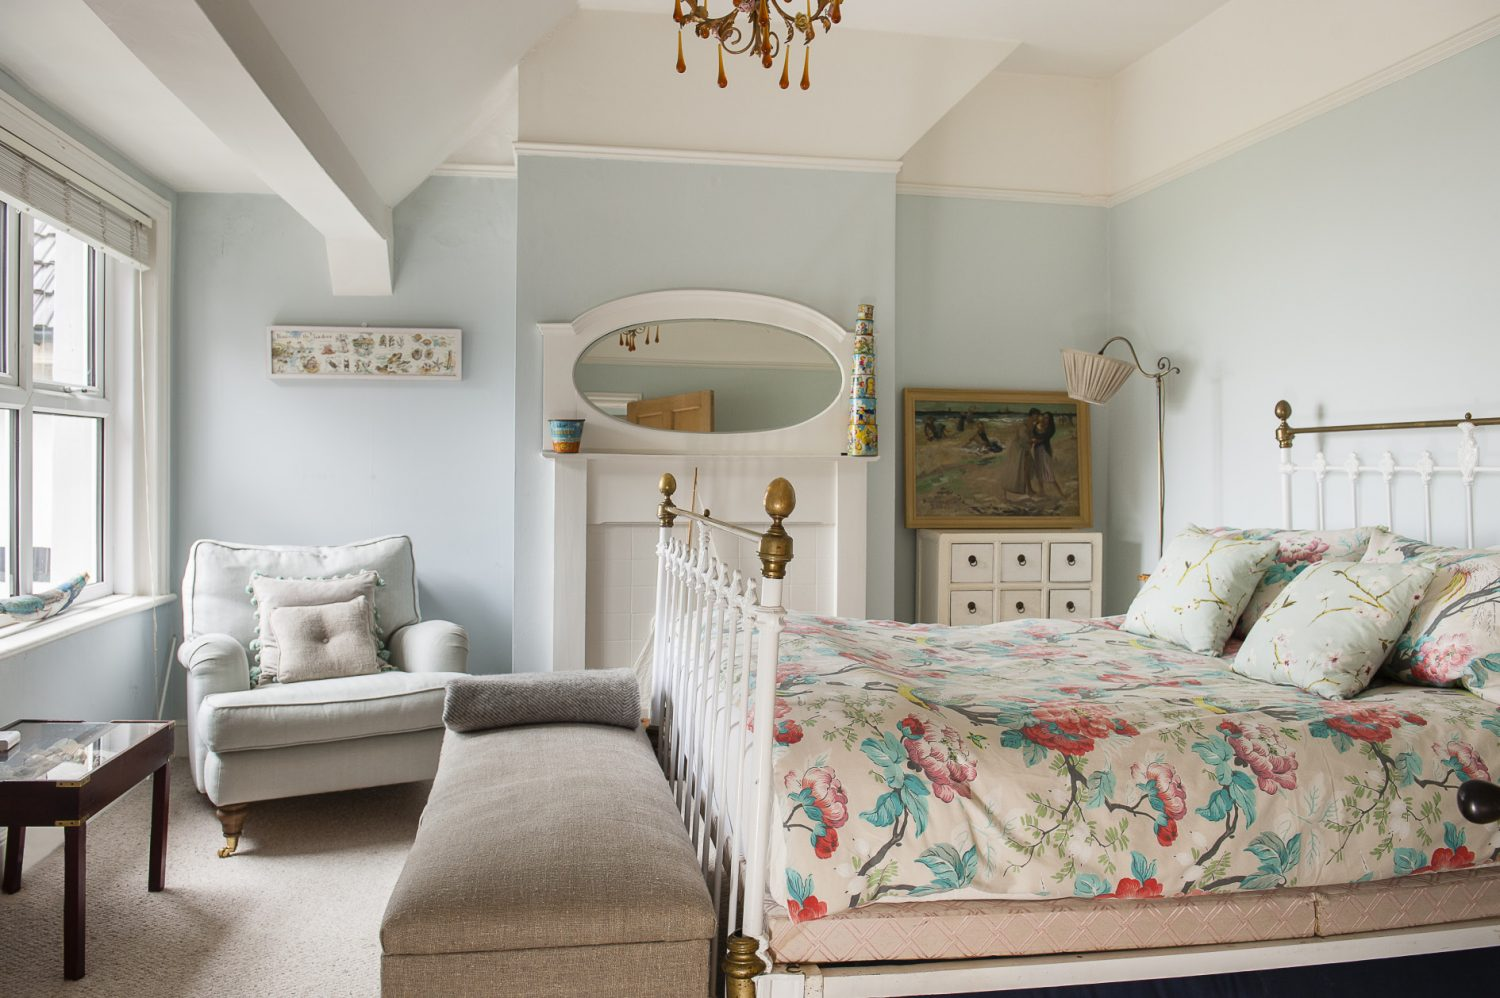 The front bedroom of the upstairs flat is very light and feminine, with a white fireplace and over mantle mirror, a lovely old brass bed and a temptingly squashy armchair